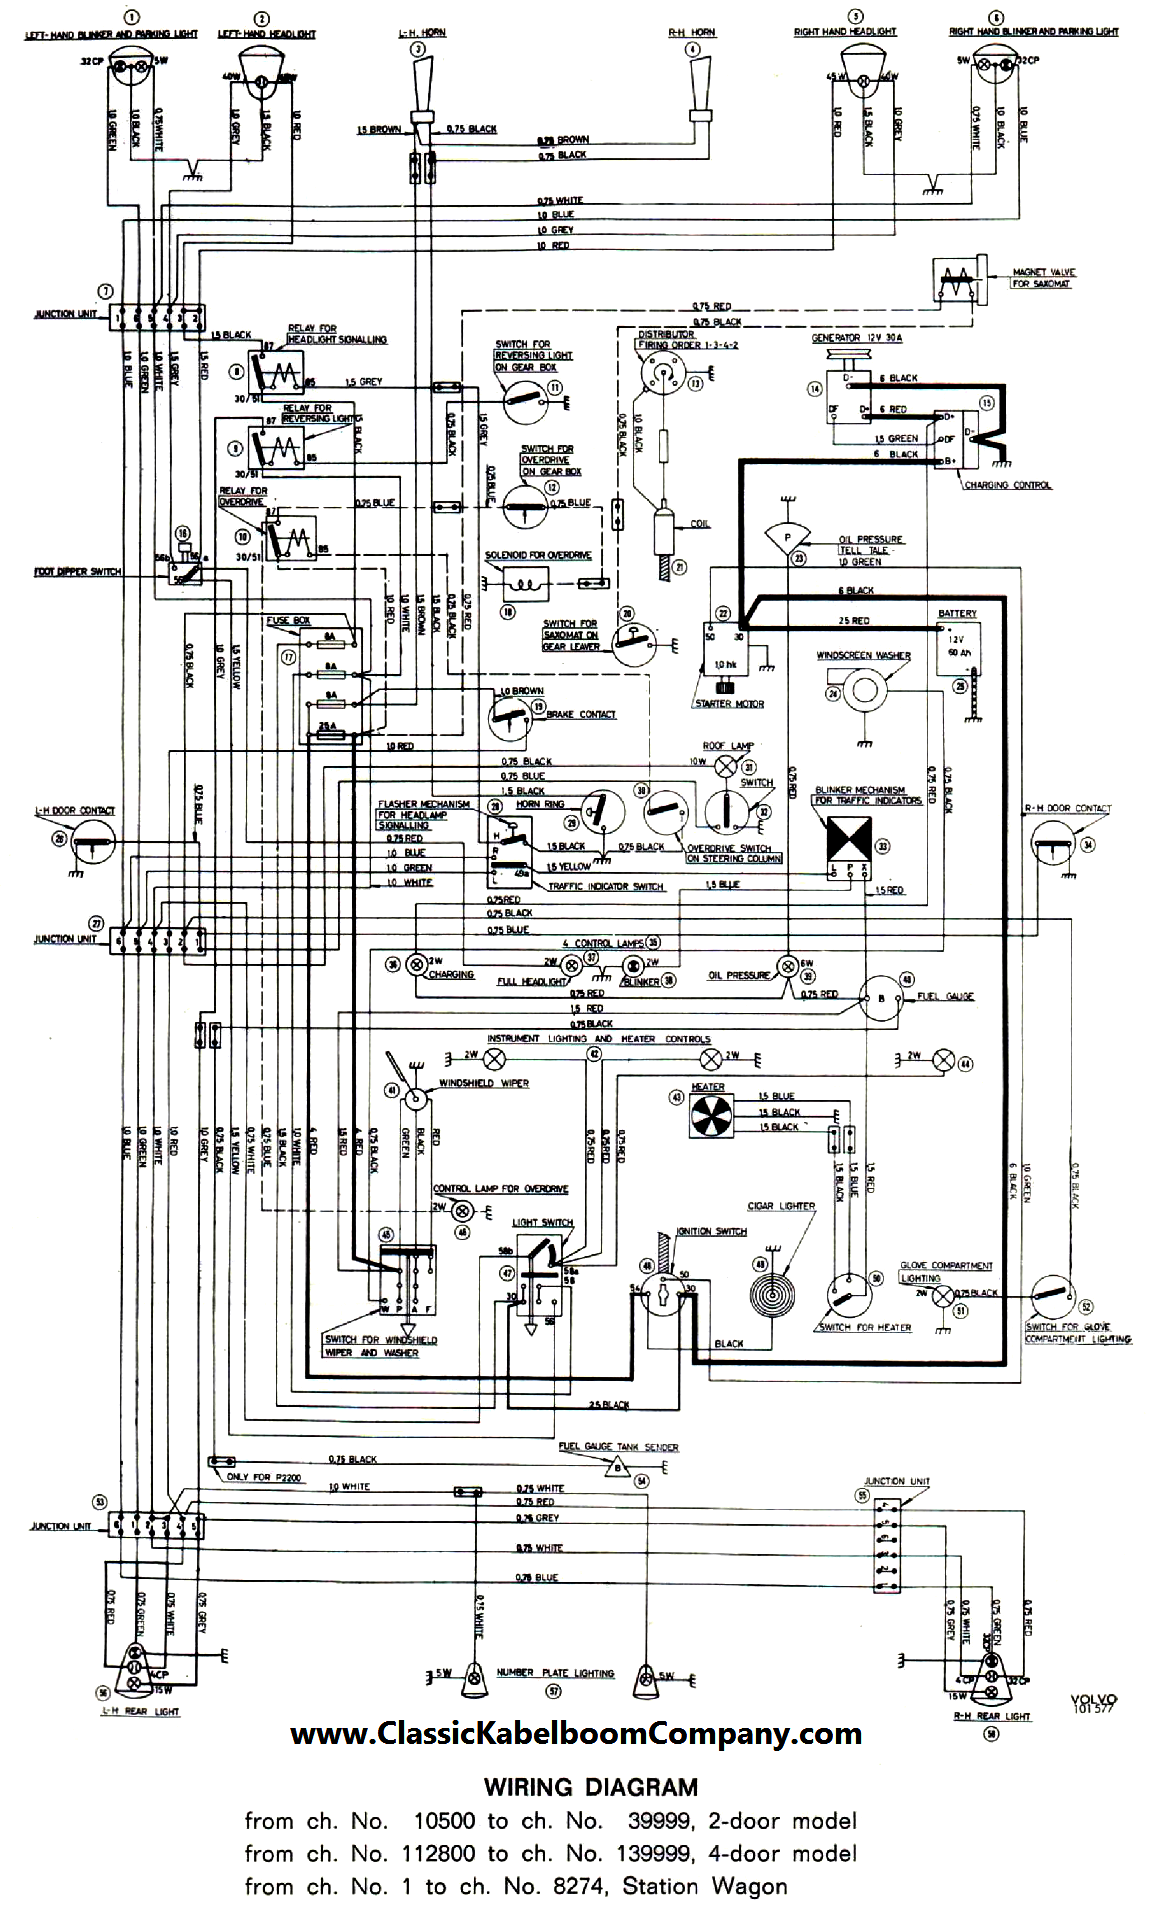 wiring diagram for 1991 volvo 740 with Volvo 122 1970 Wiring Diagram on Showthread also 2007 Volvo D13 Wiring Diagram further Volvo 850 Radio Wiring Diagram besides Volvo 240 Diagrams For All You Do It Yourself Types also 1989 Volvo 240 Ignition Wiring Diagram.